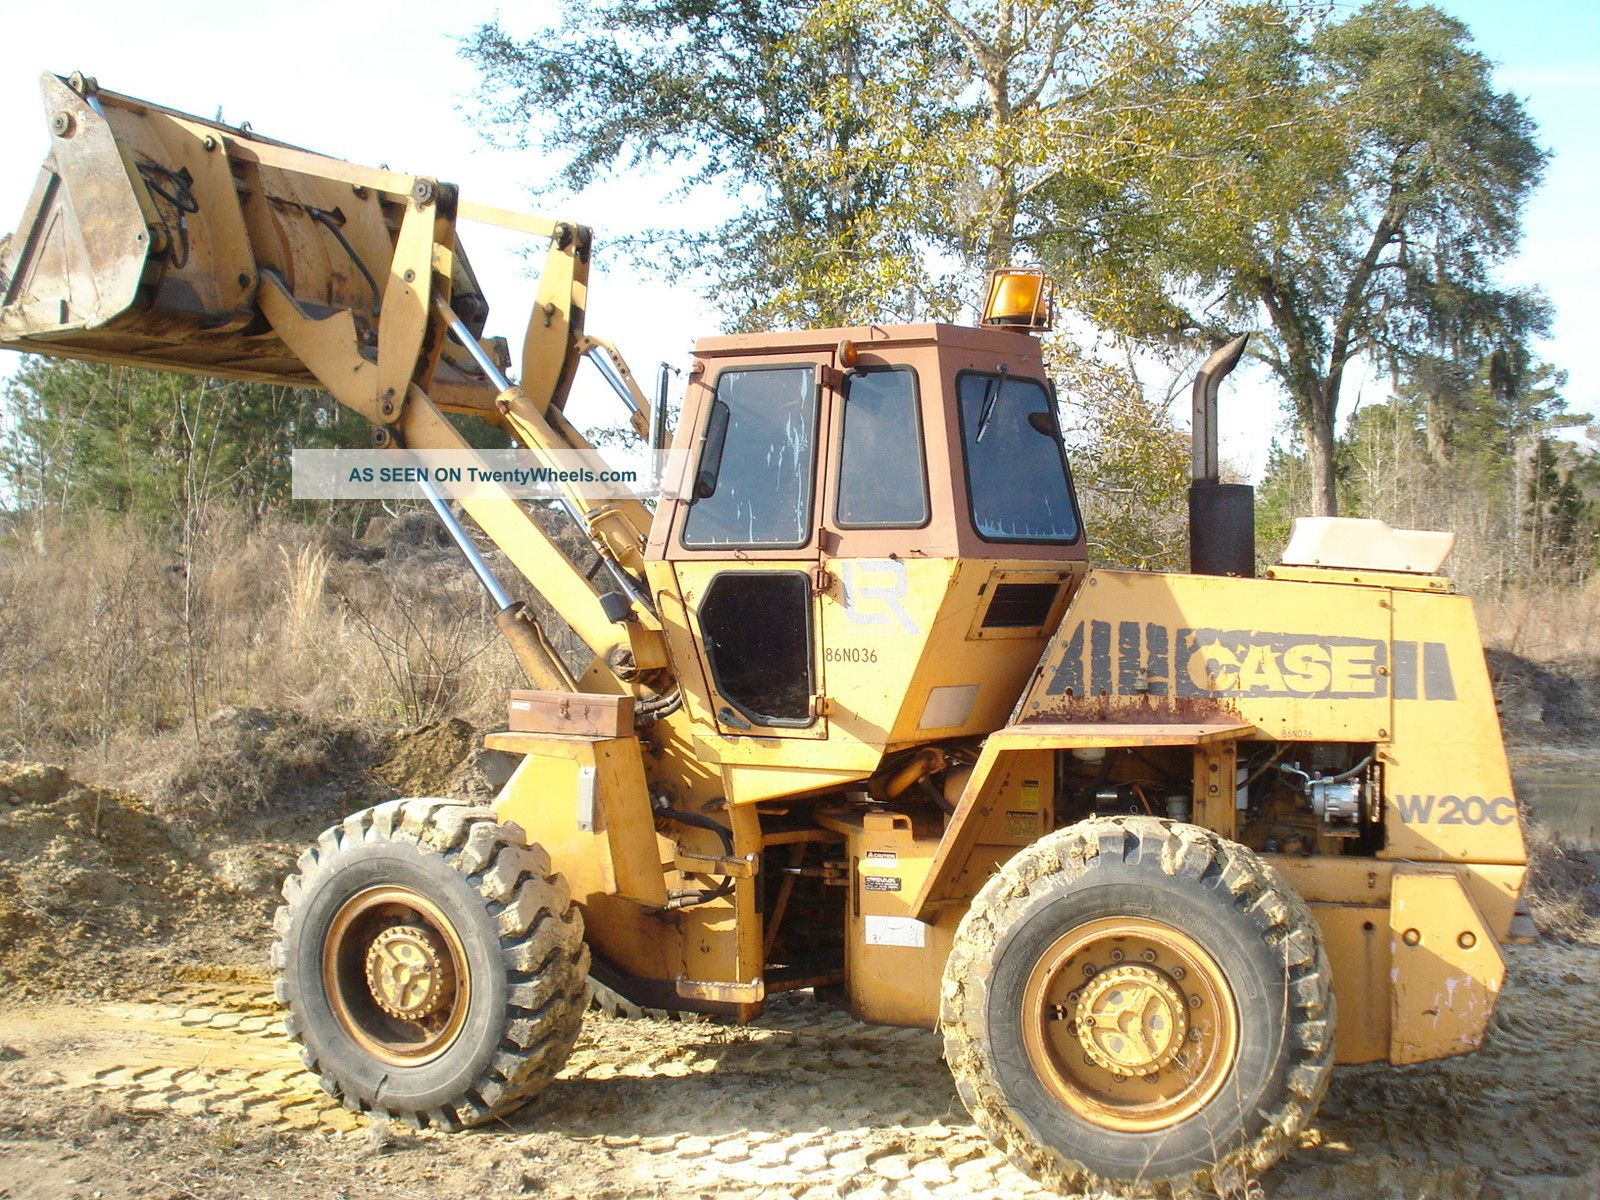 Case W 20 C Wheel Loaders photo